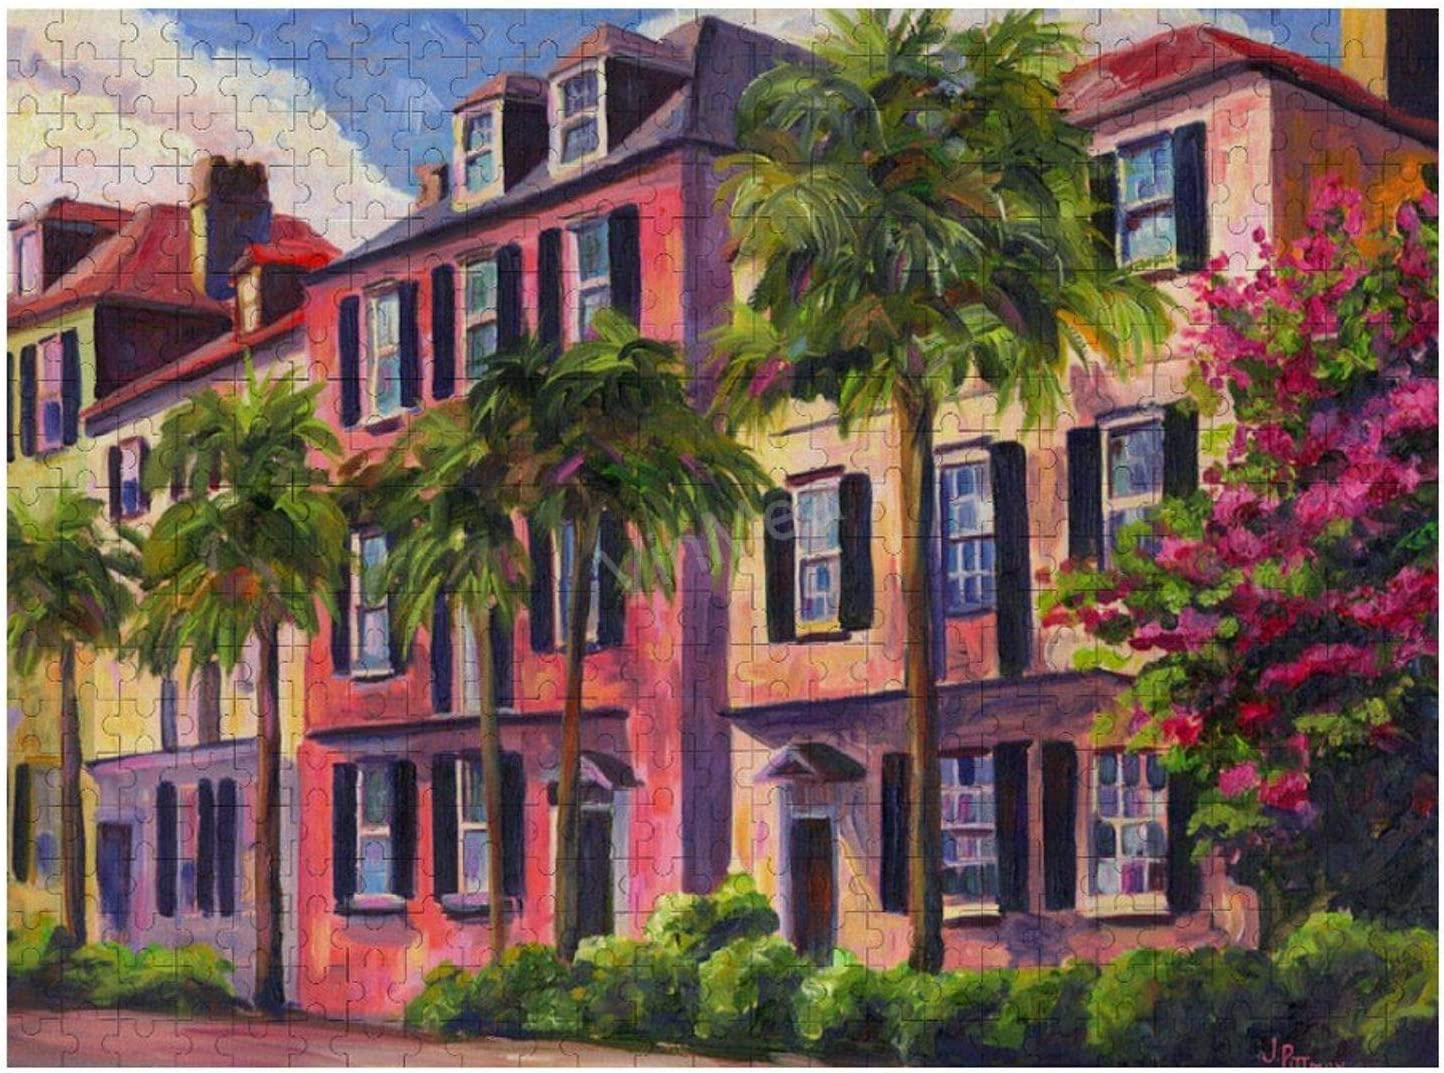 Jigsaw Puzzle, Puzzles for Adults and Kids 300 Pieces - Rainbow-Row-Charleston-Sc-Jeff-Pittman Home Decor & Game Art of Kids